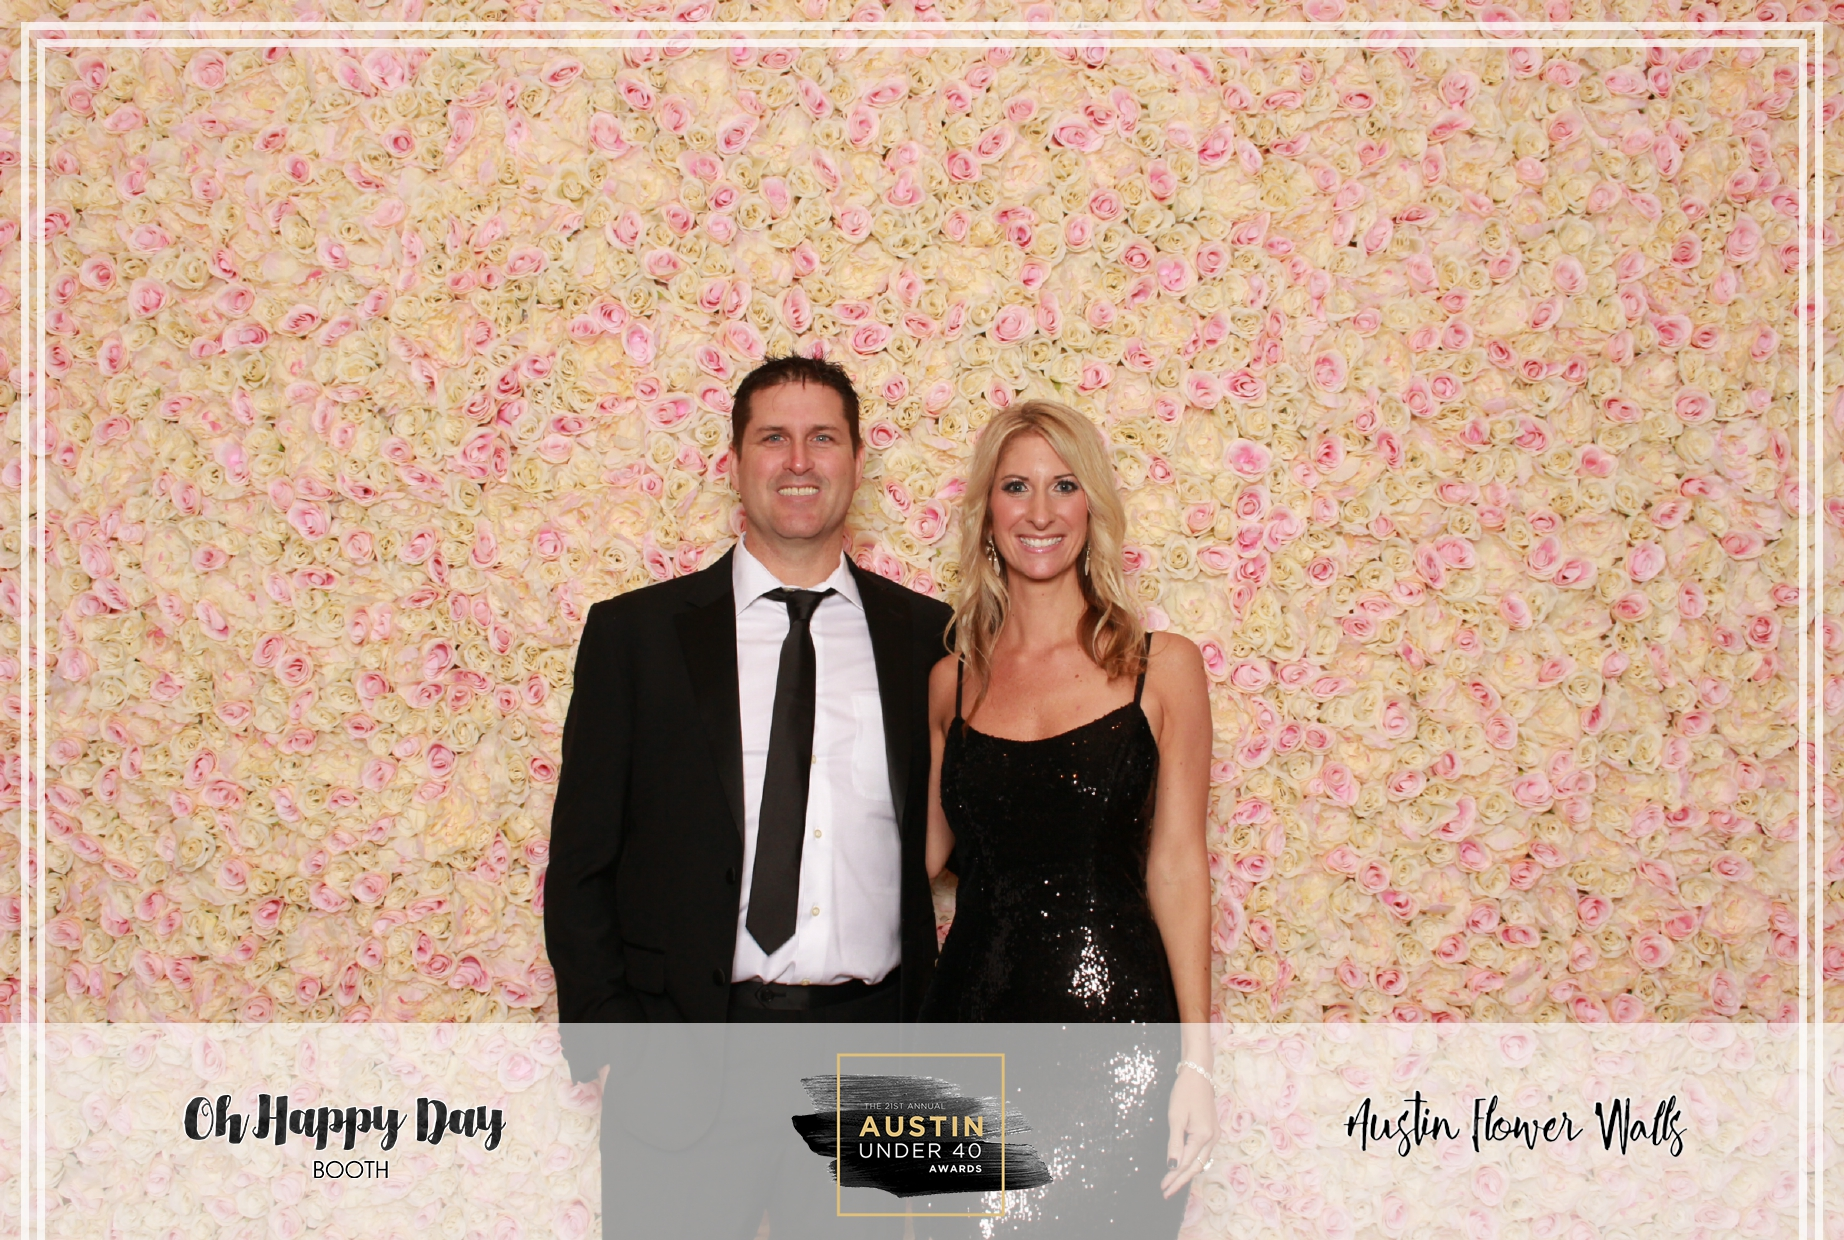 Oh Happy Day Booth - Austin Under 40-27.jpg